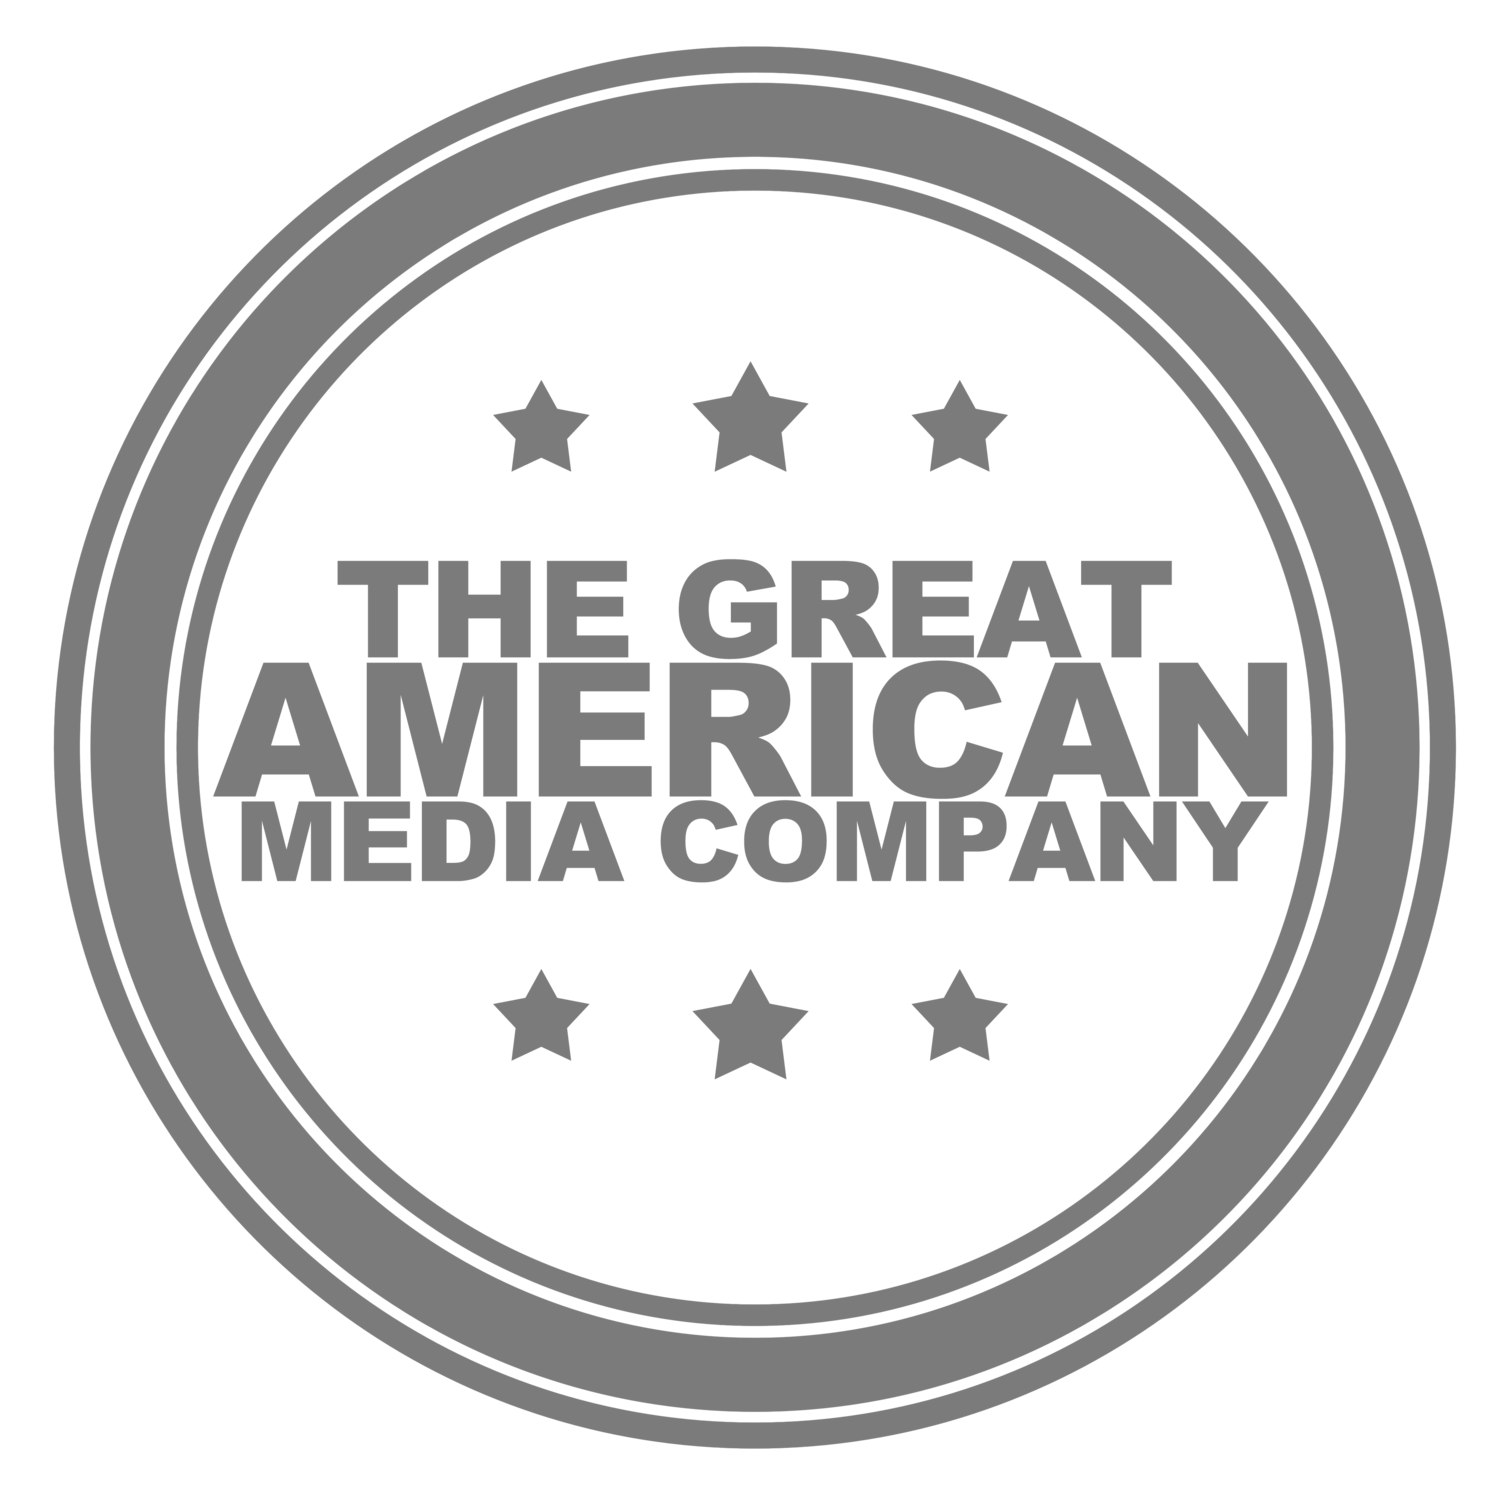 The Great American Media Company